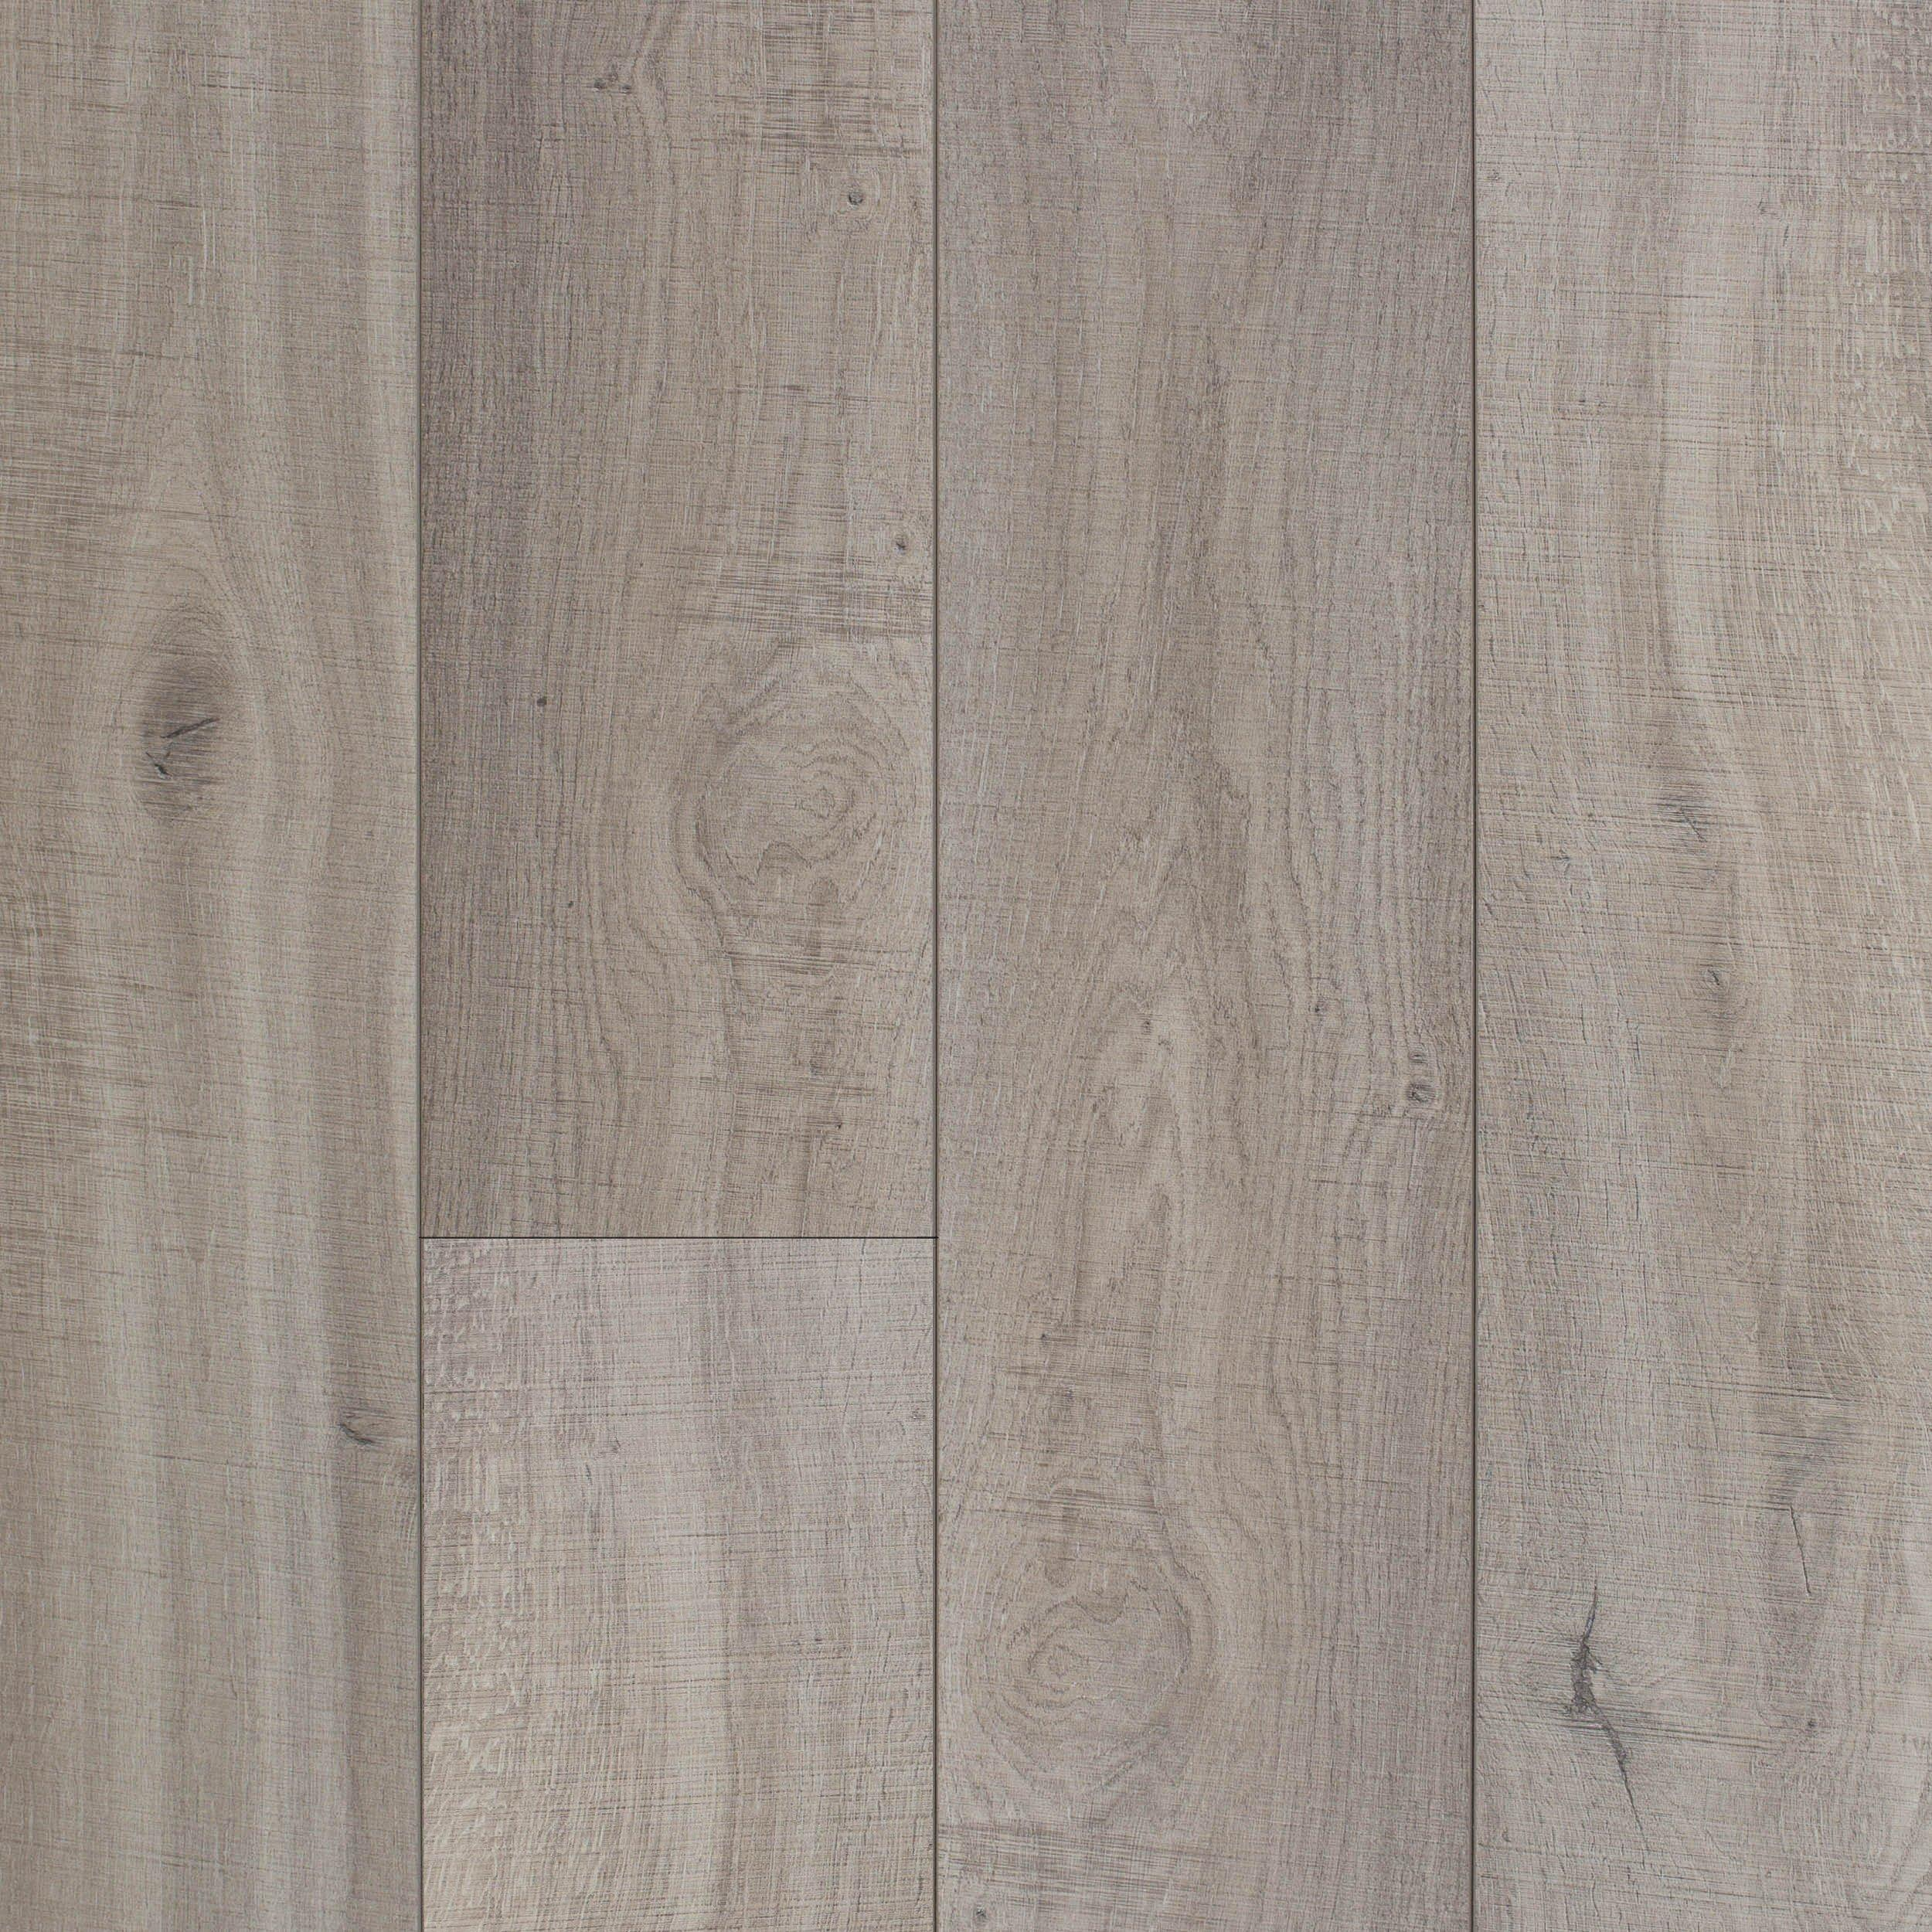 Napa Grande Water Resistant Laminate Products In 2019